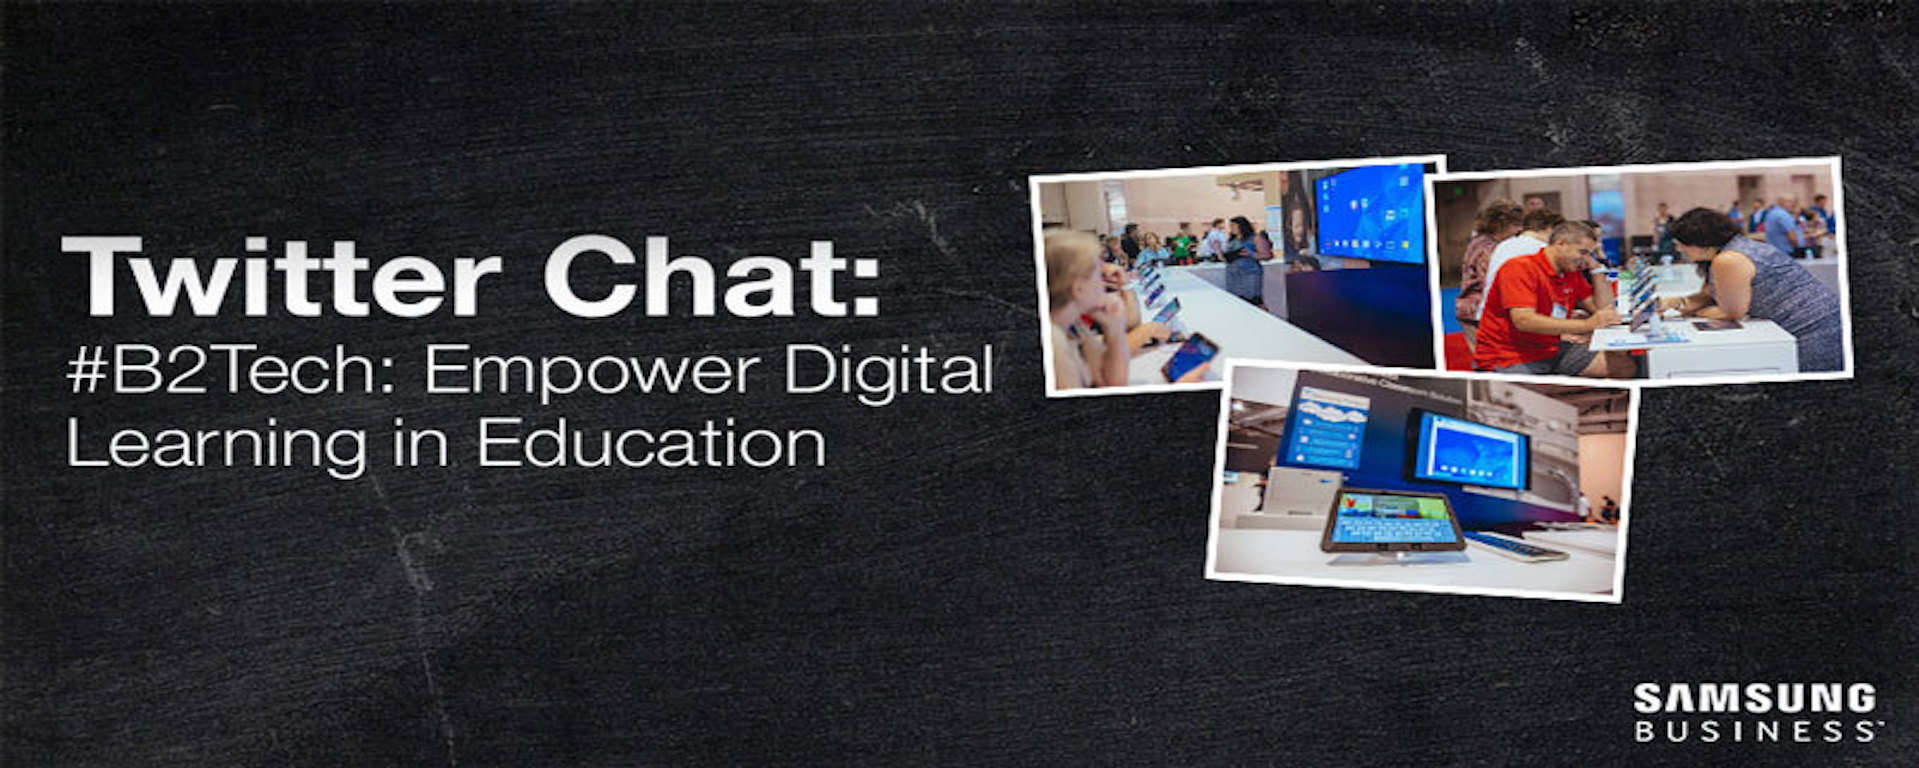 Empowering Digital Learning in Education